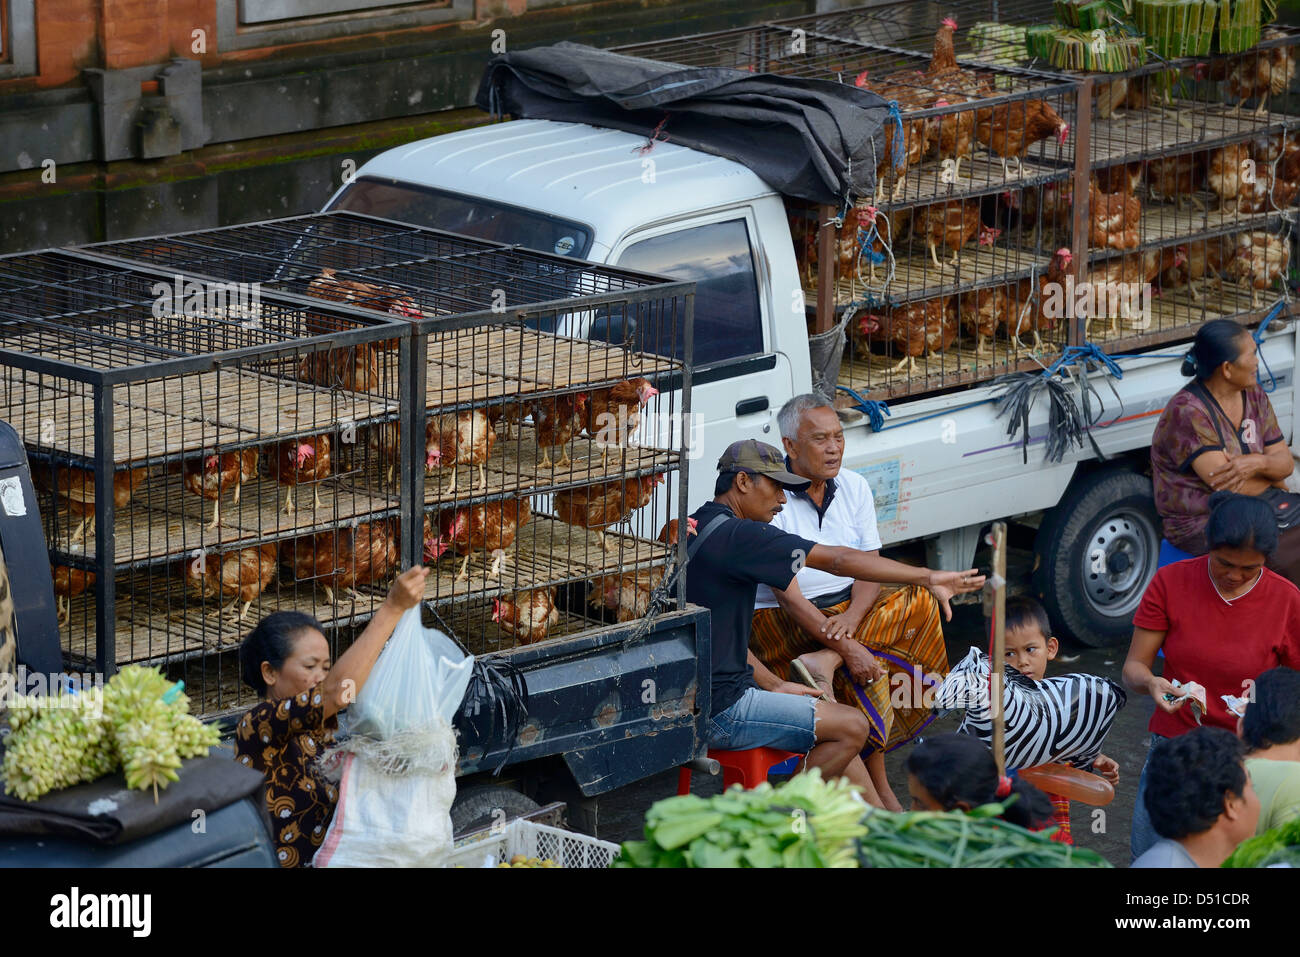 Indonesia, Bali, Ubud, selling chicken and vegetables at the market - Stock Image